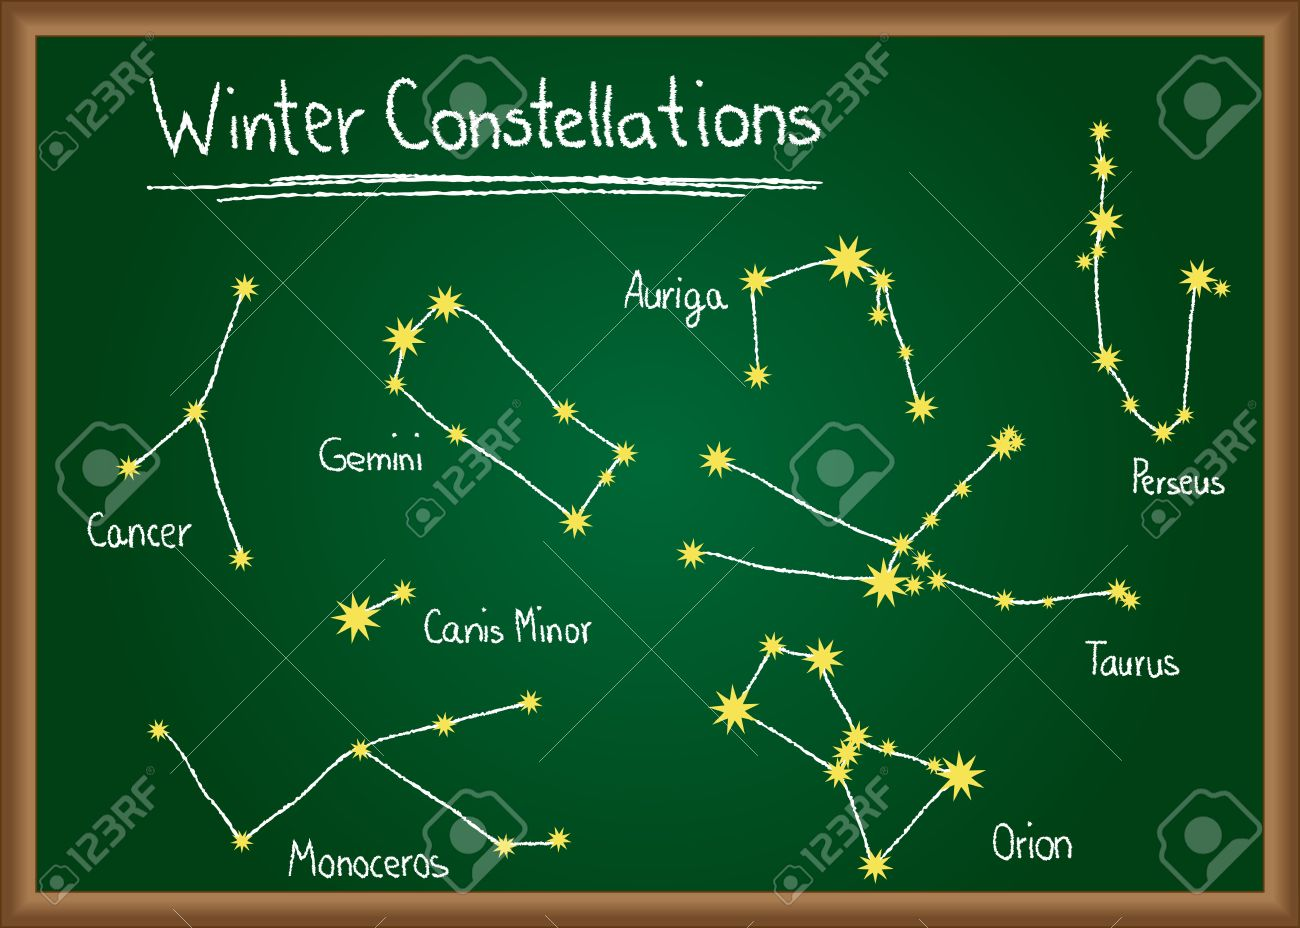 Winter Constellations of northern sky drawn on school chalkboard Stock Vector - 16561800